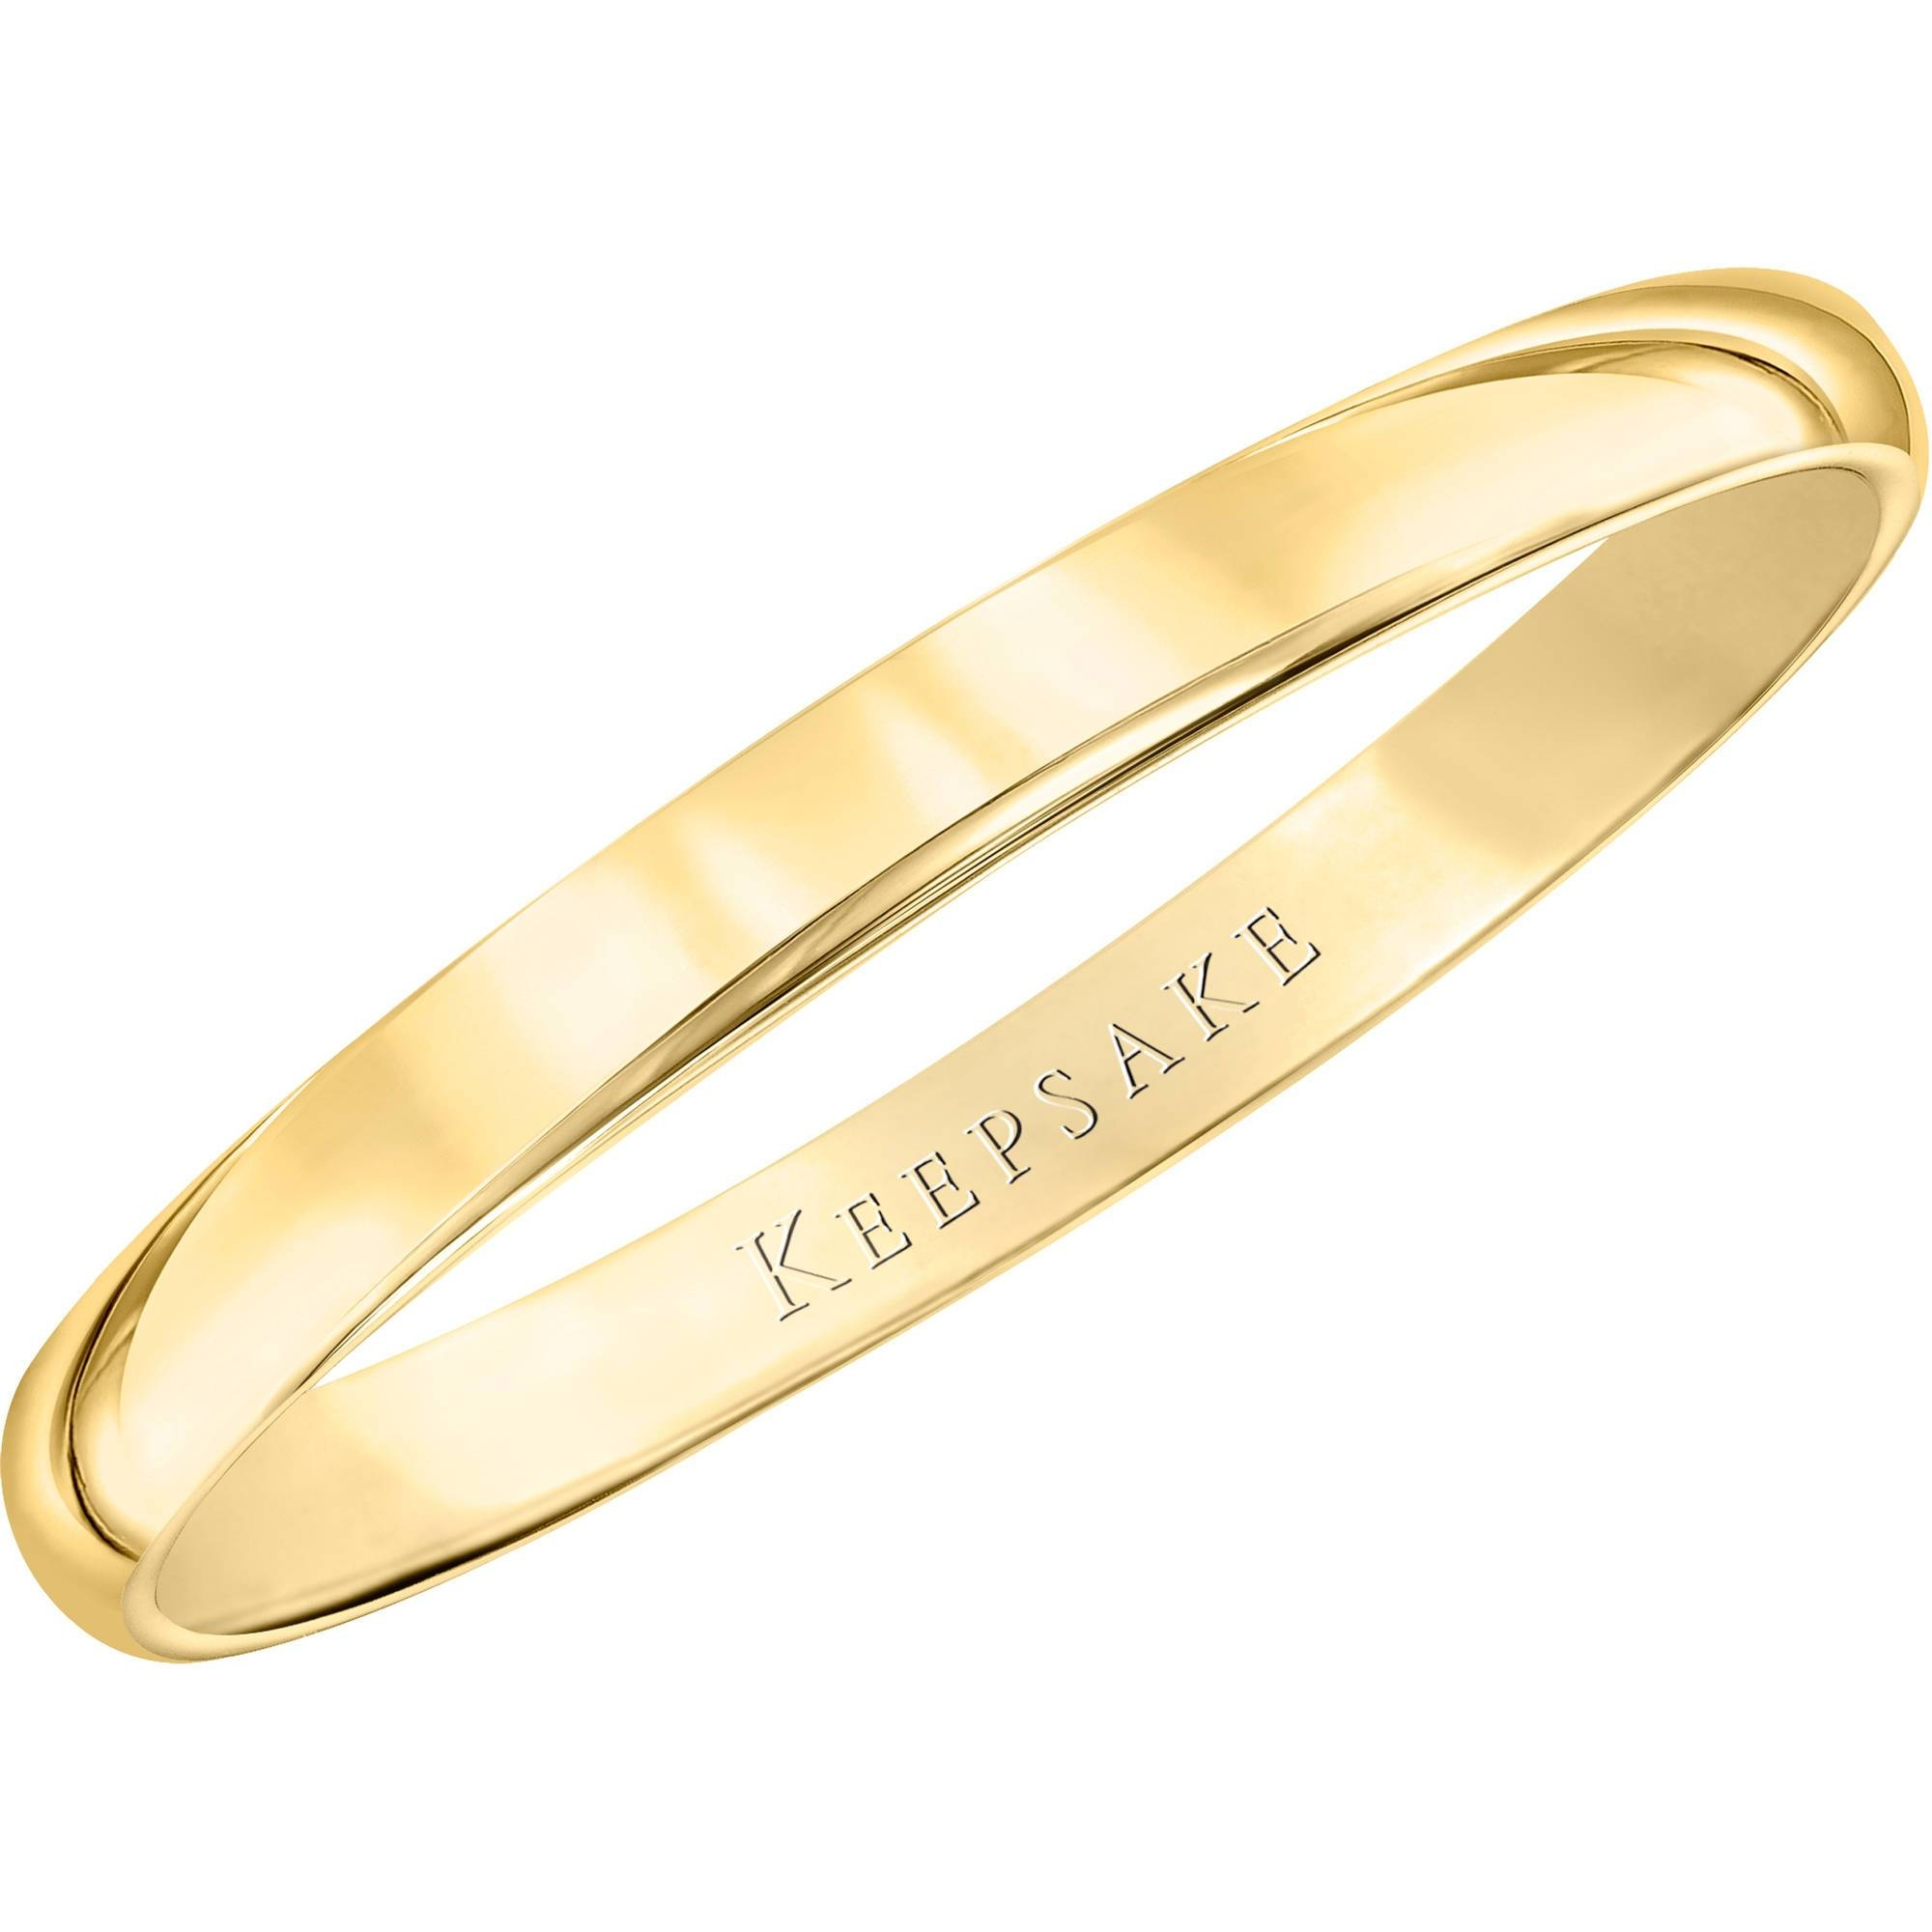 Keepsake 10Kt Yellow Gold Wedding Band With High Polish Finish Throughout Wedding Bands At Walmart (View 5 of 15)